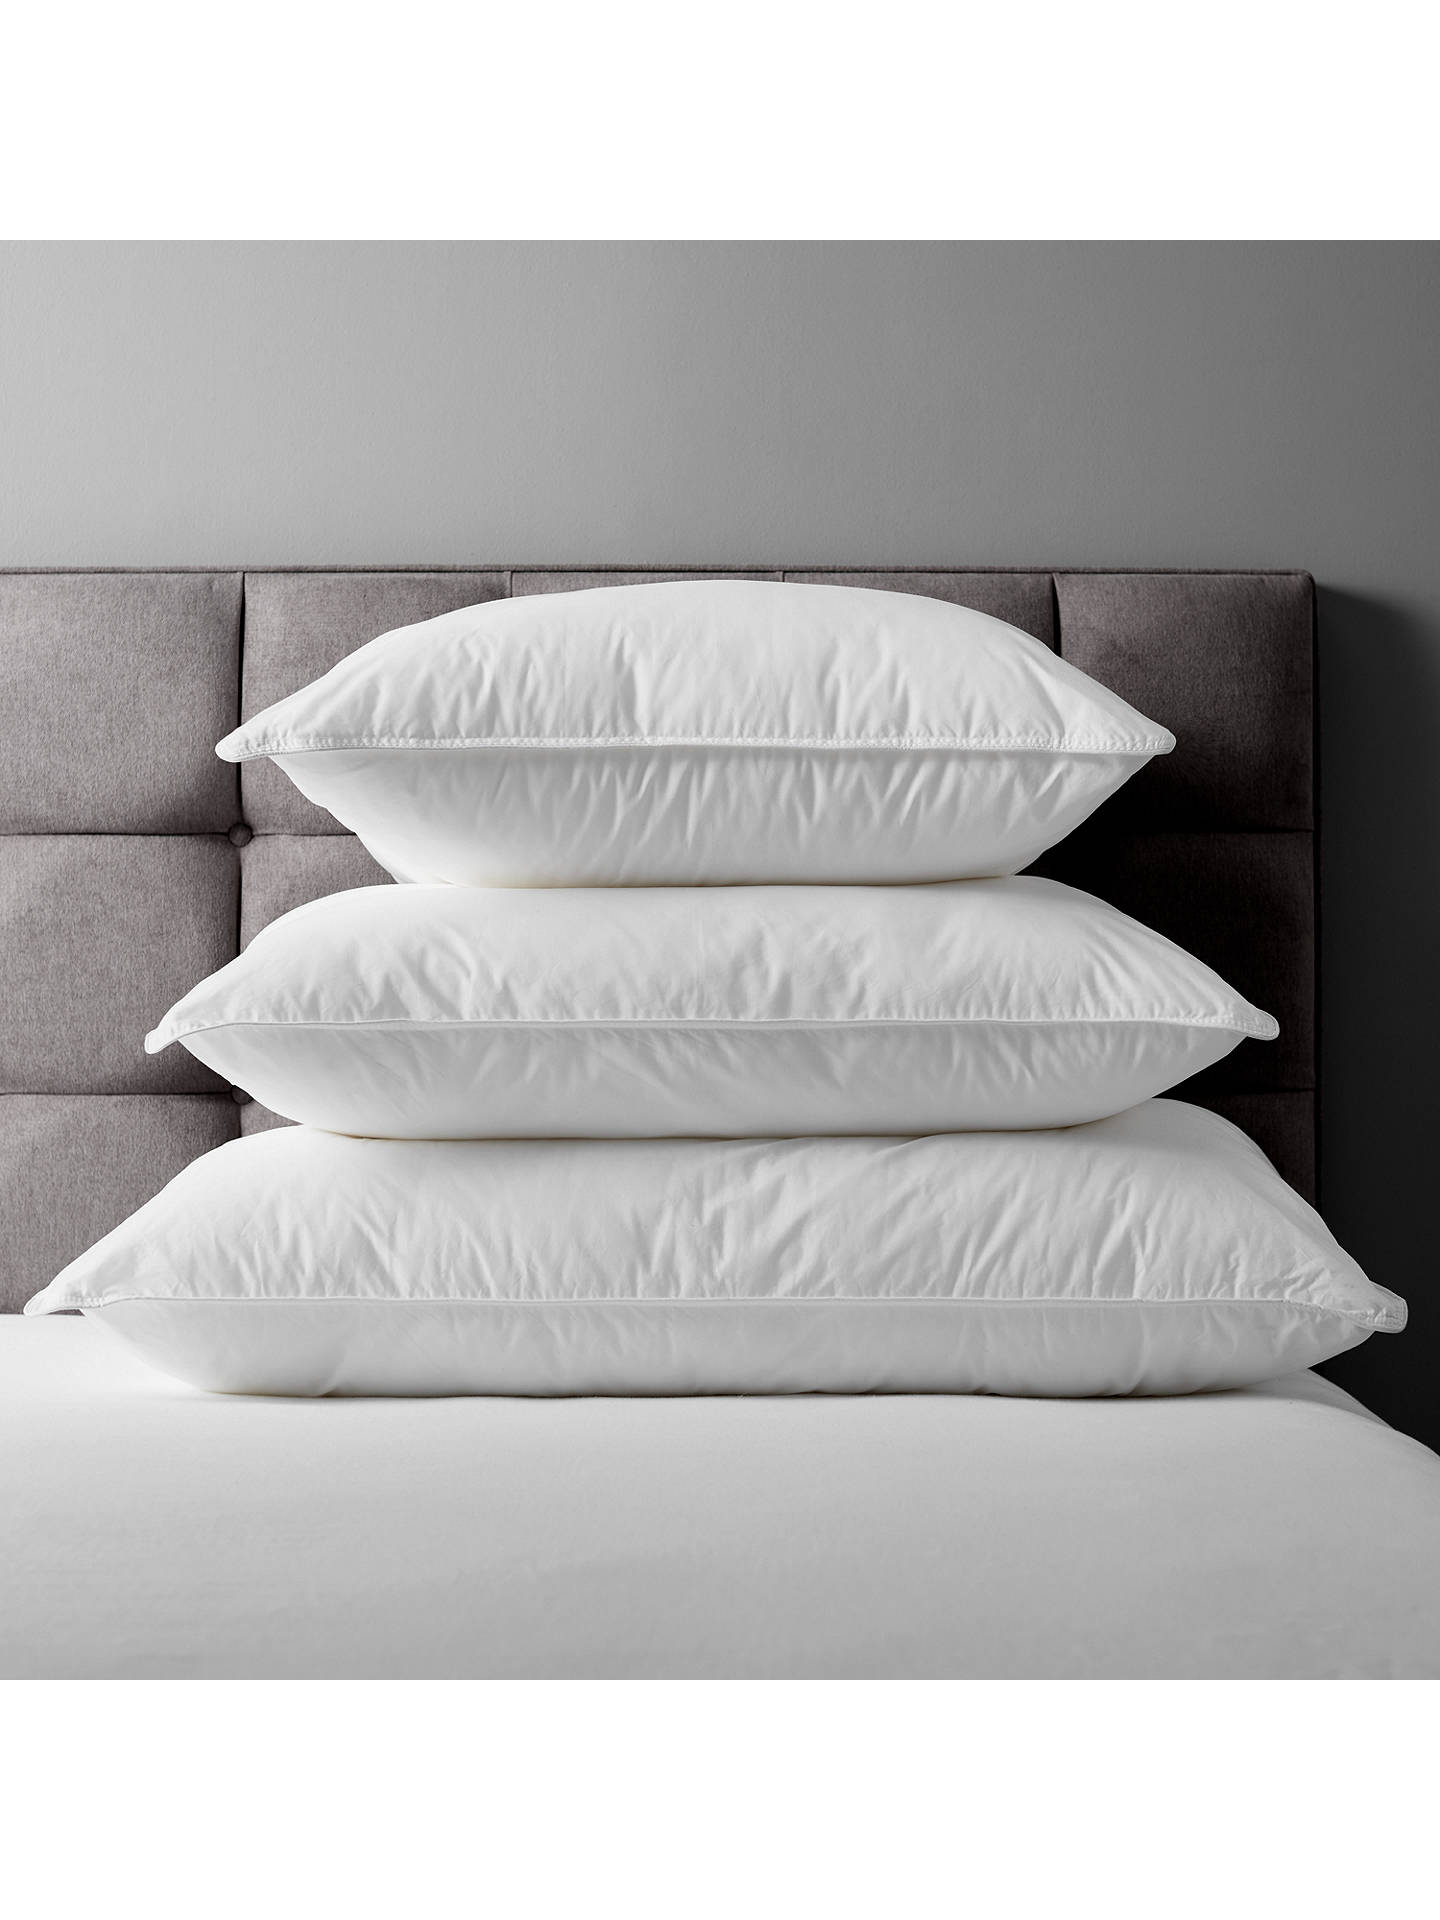 BuyJohn Lewis & Partners Synthetic Soft Like Down Standard Pillow, Medium/Firm Online at johnlewis.com